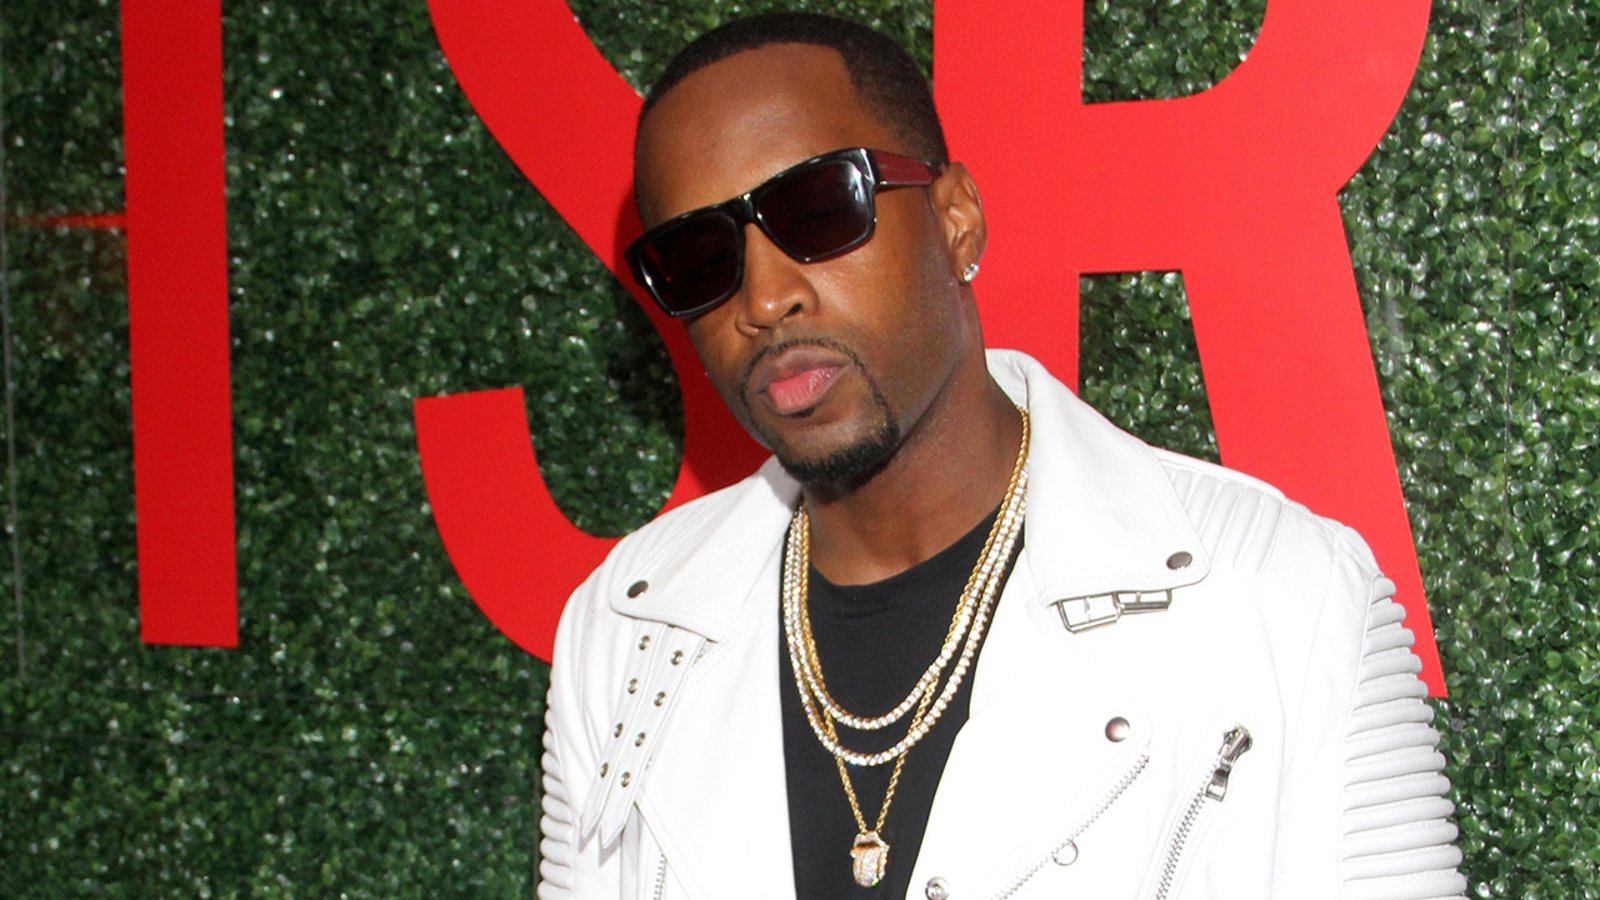 Safaree Raises Awareness About Mental Health During These Hard Times